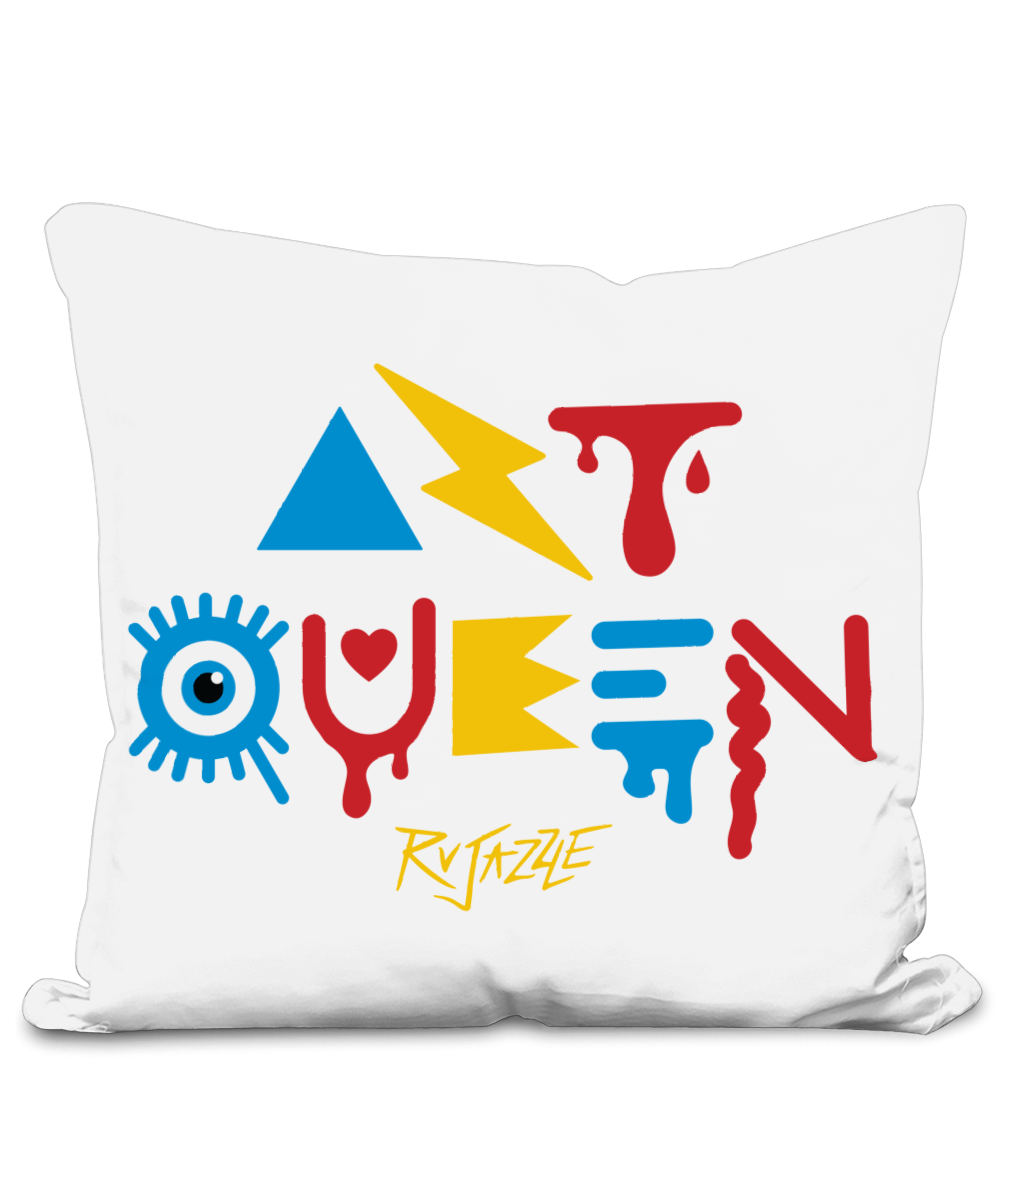 Rujazzle - Art Queen Cushion Cover - SNATCHED